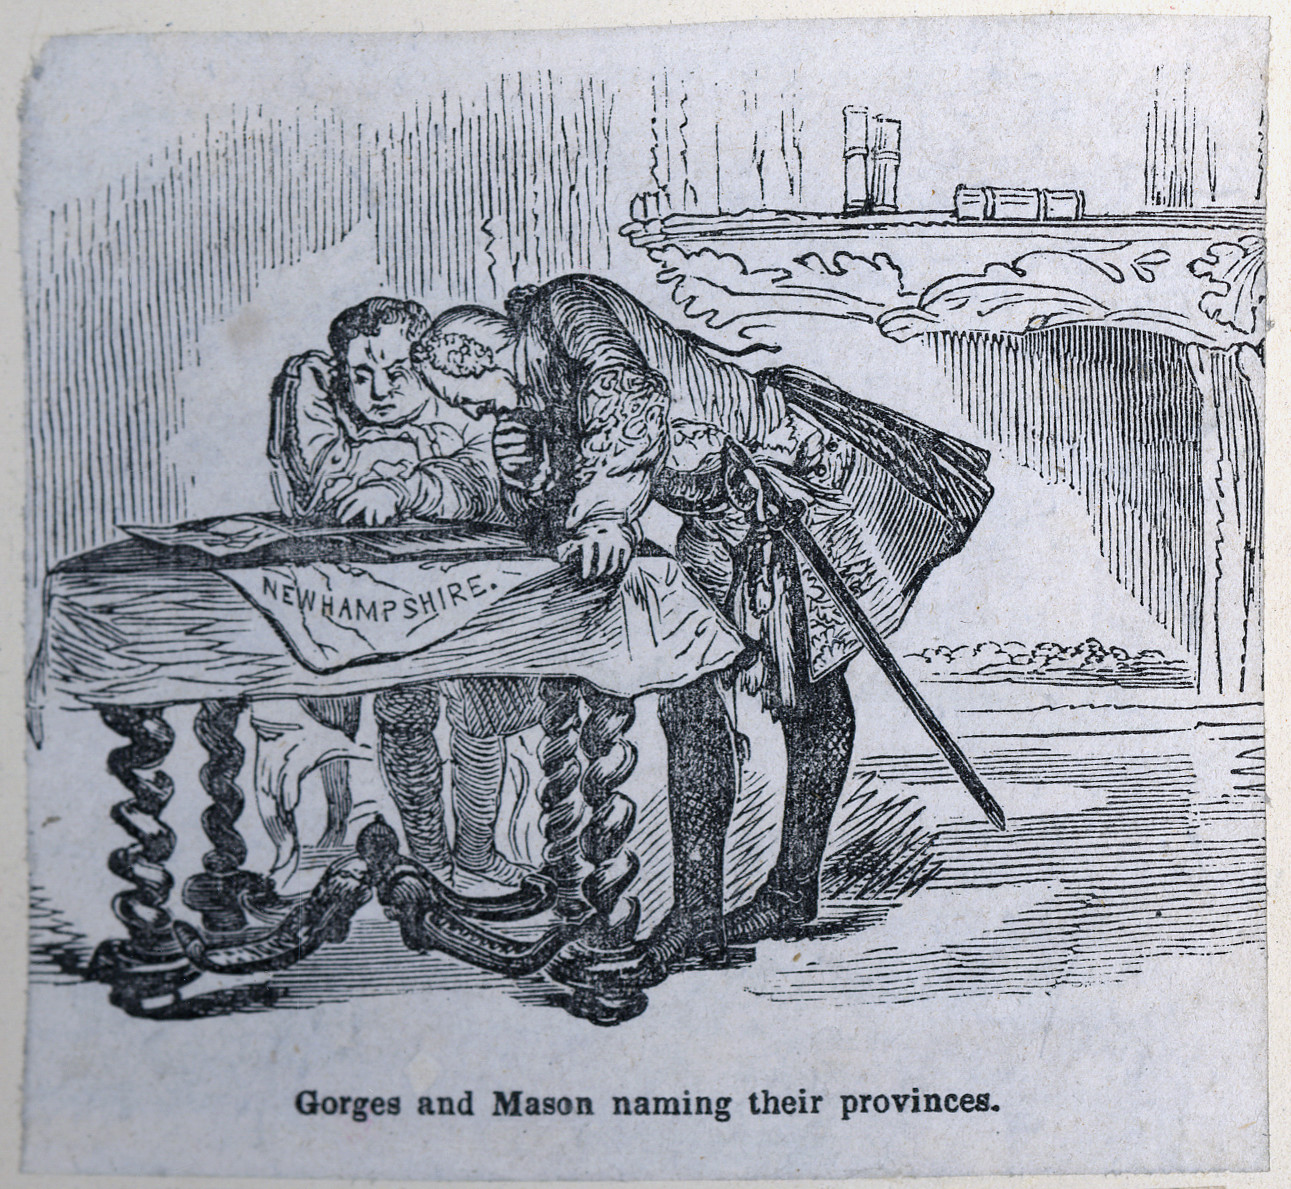 In a black and white cartoon, two figures are seen bending over a desk, looking at a piece of paper. They are dressed in formal clothing from the 1600s, and one of them wears a sword. The table and mantle behind them are ornate. Over the tablecloth, a corner of the paper hangs and the viewer can see it says